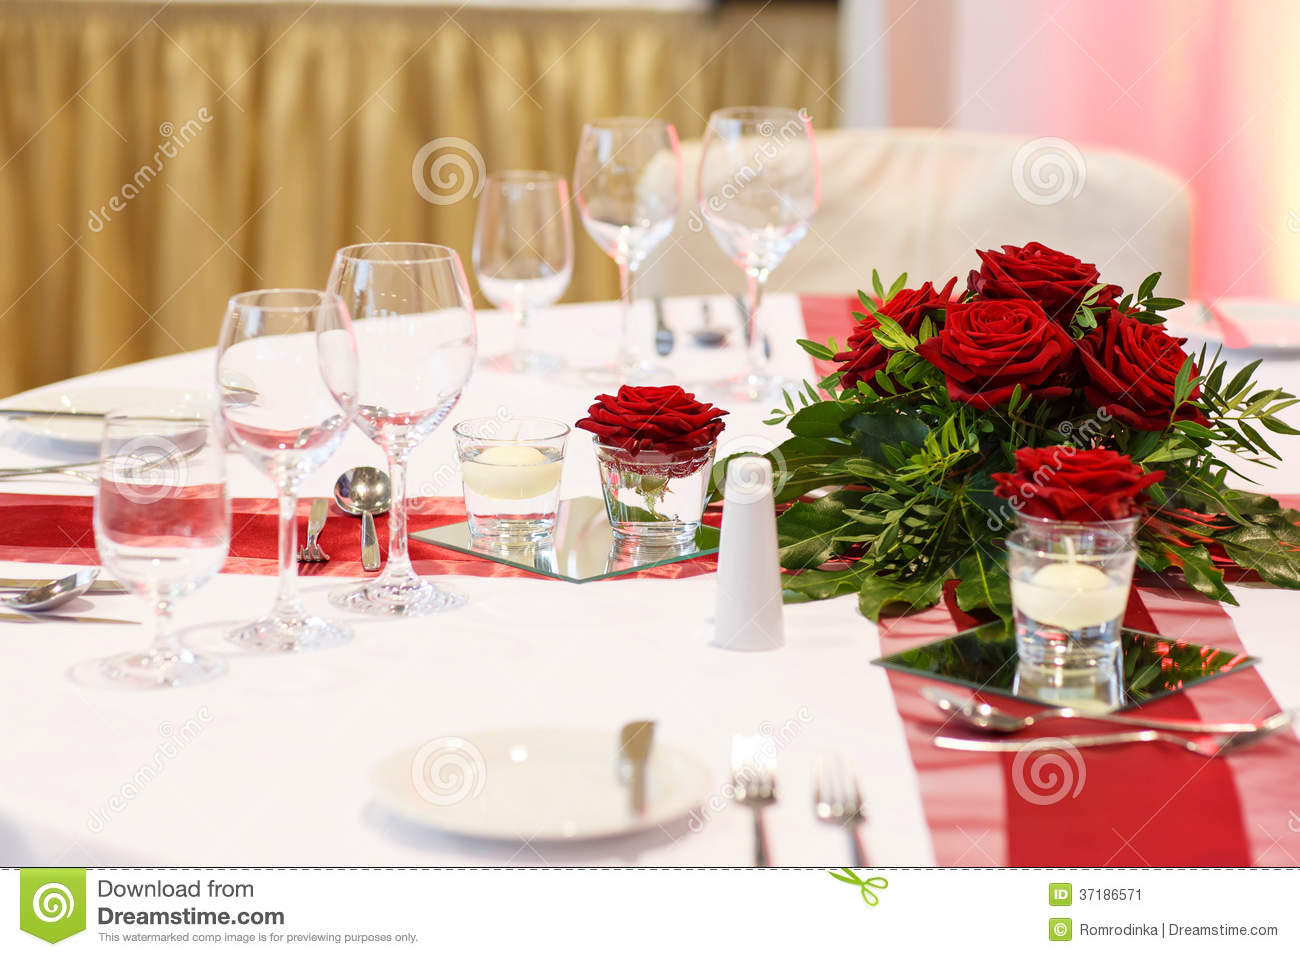 Elegant Table Set In Red And White For Wedding Or Event Party. Stock ...